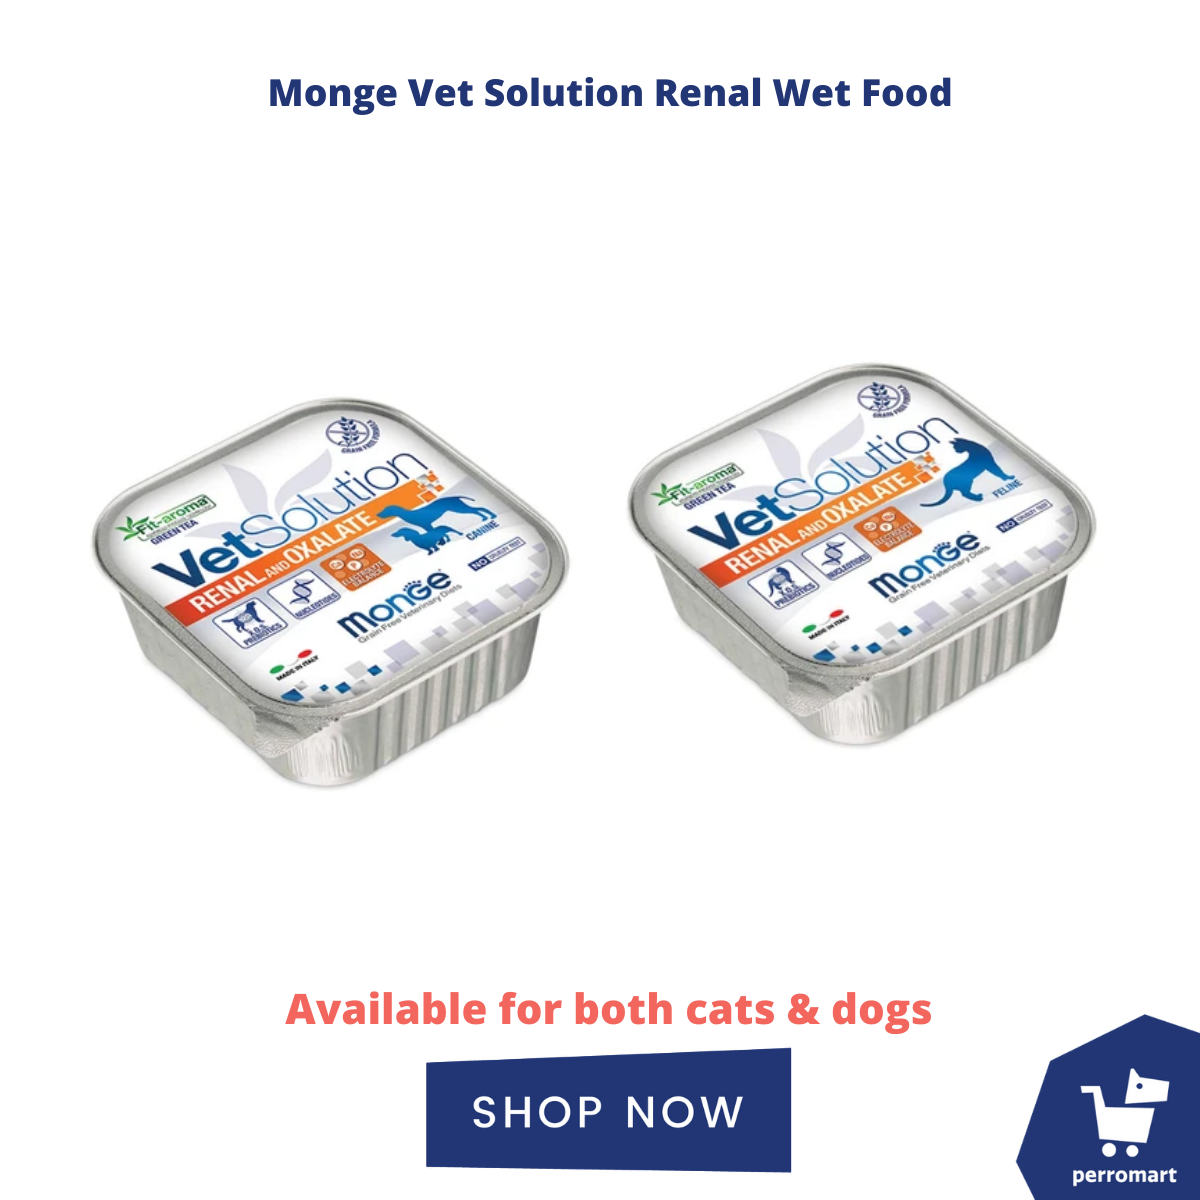 monge veterinary renal wet food for dogs and cats with kidney issues